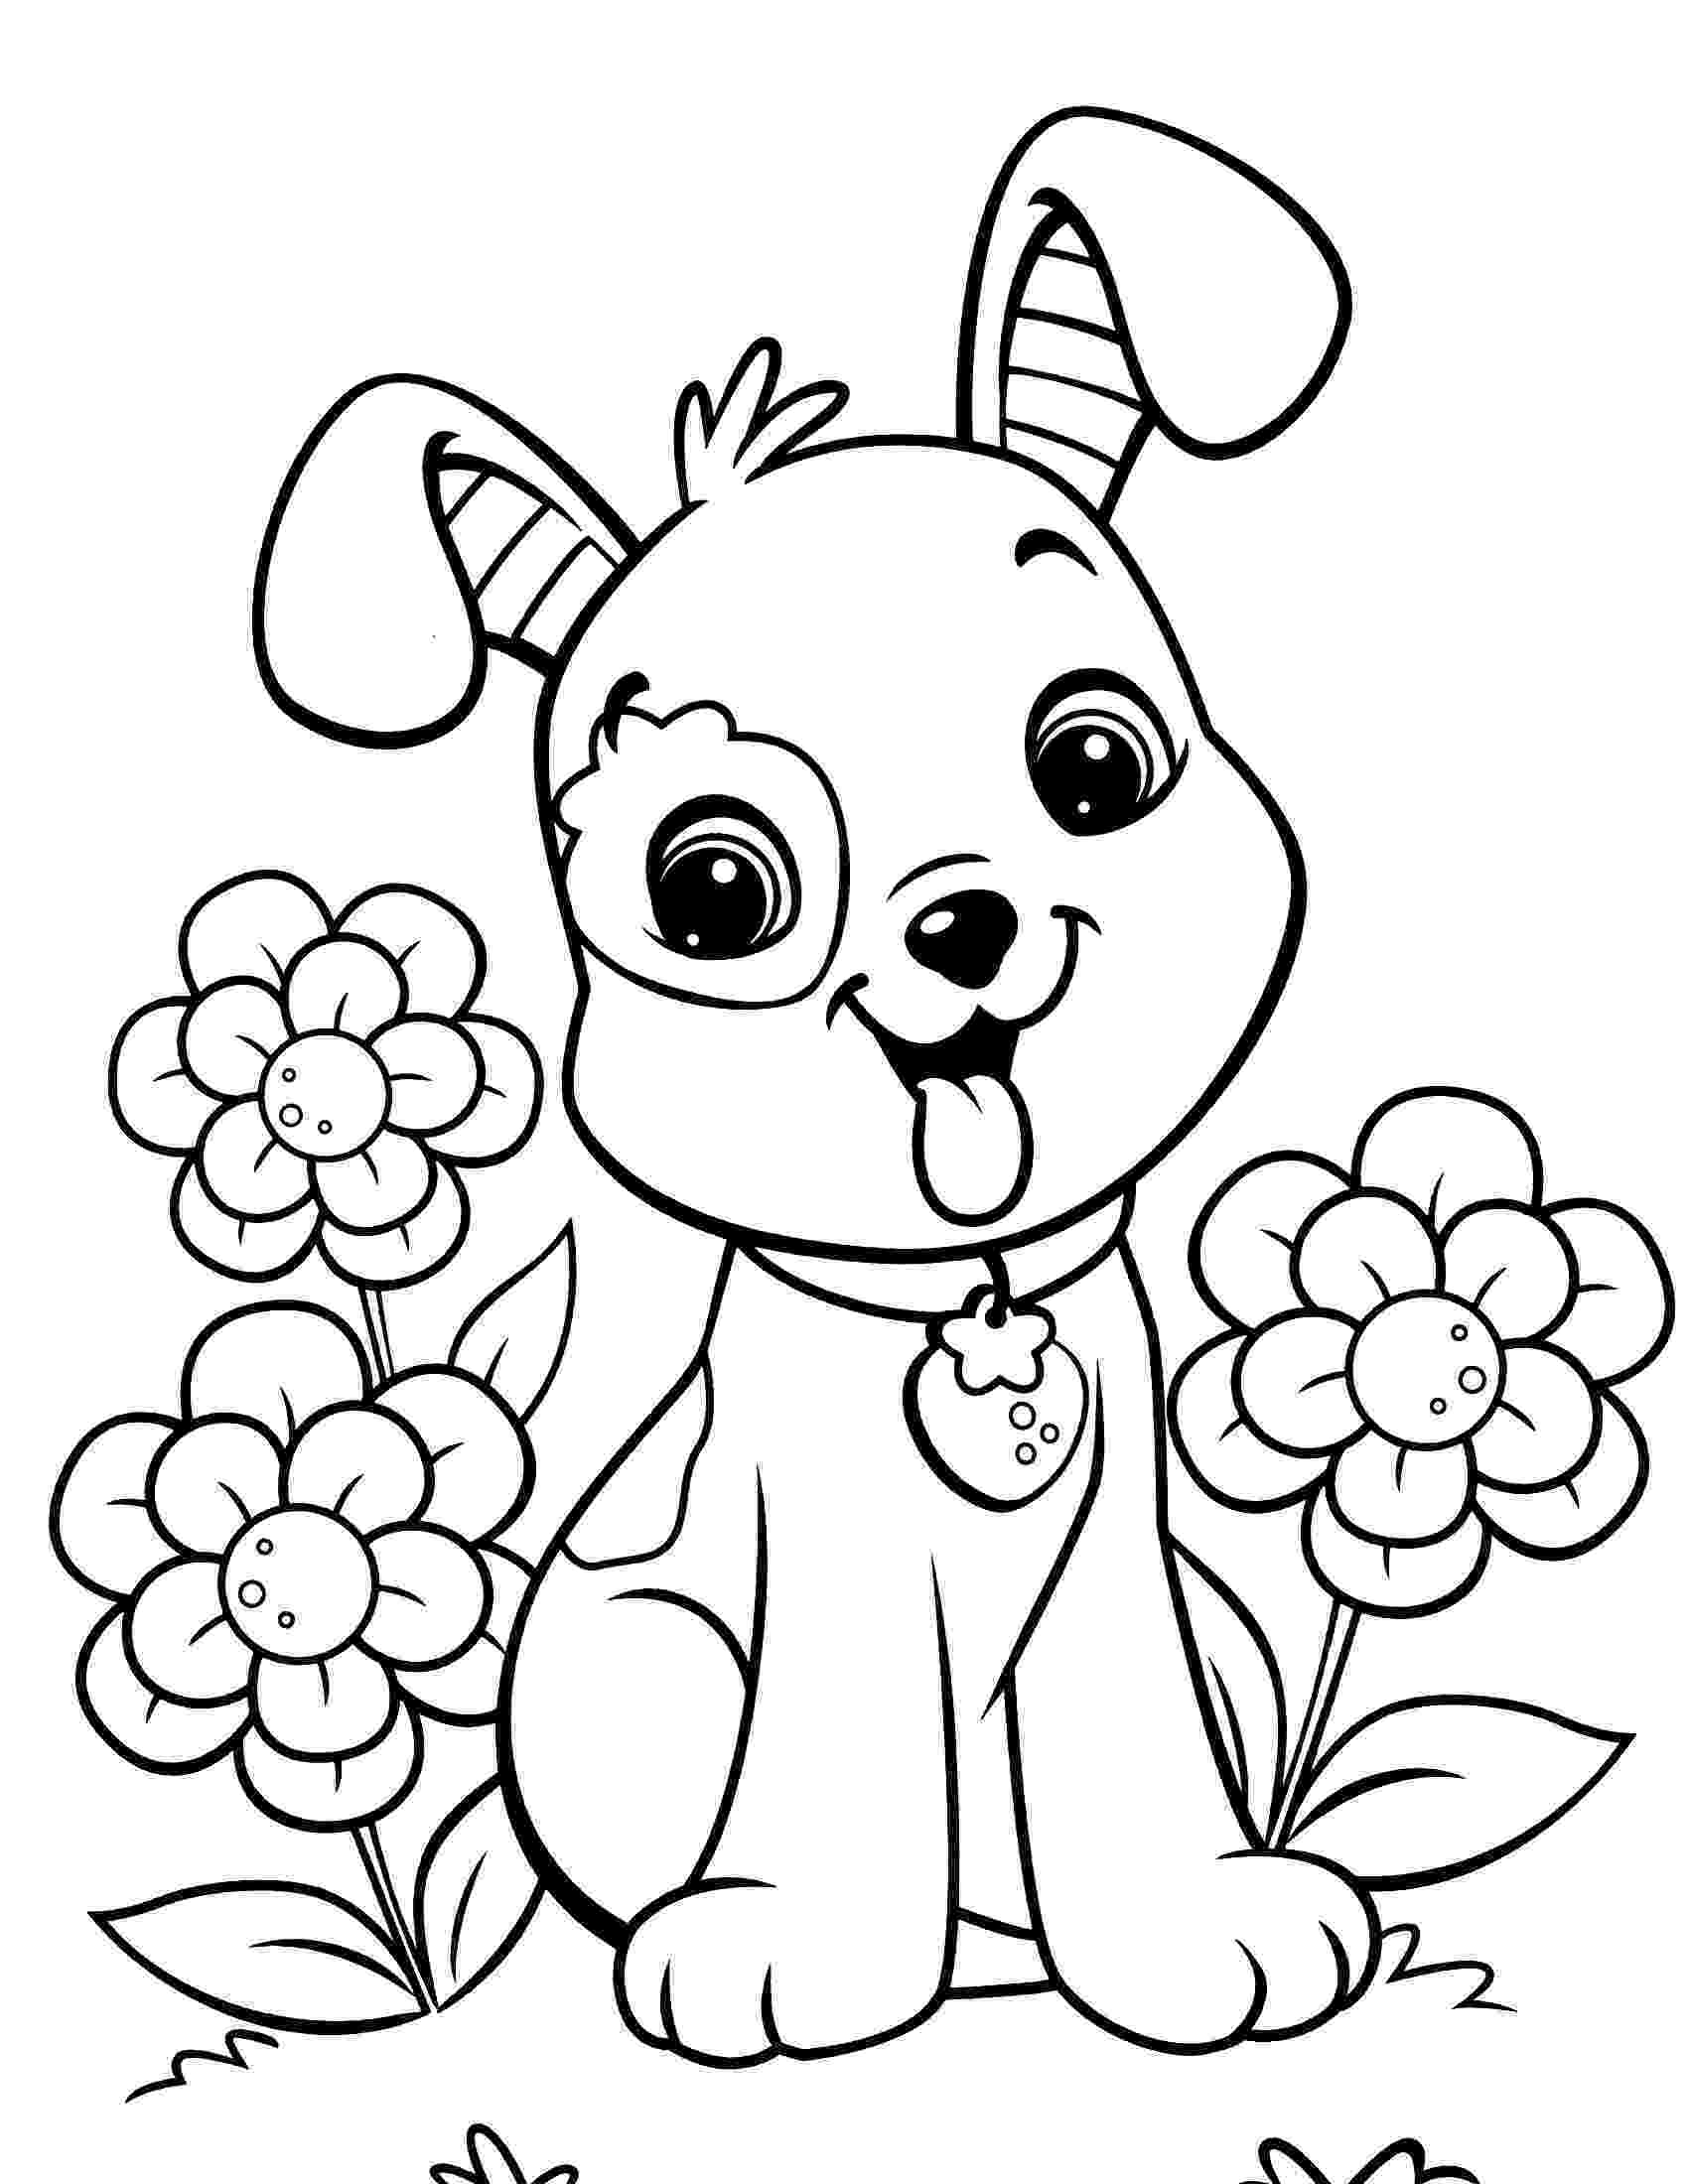 dog colouring pictures printable printable dog coloring pages for kids cool2bkids printable pictures colouring dog